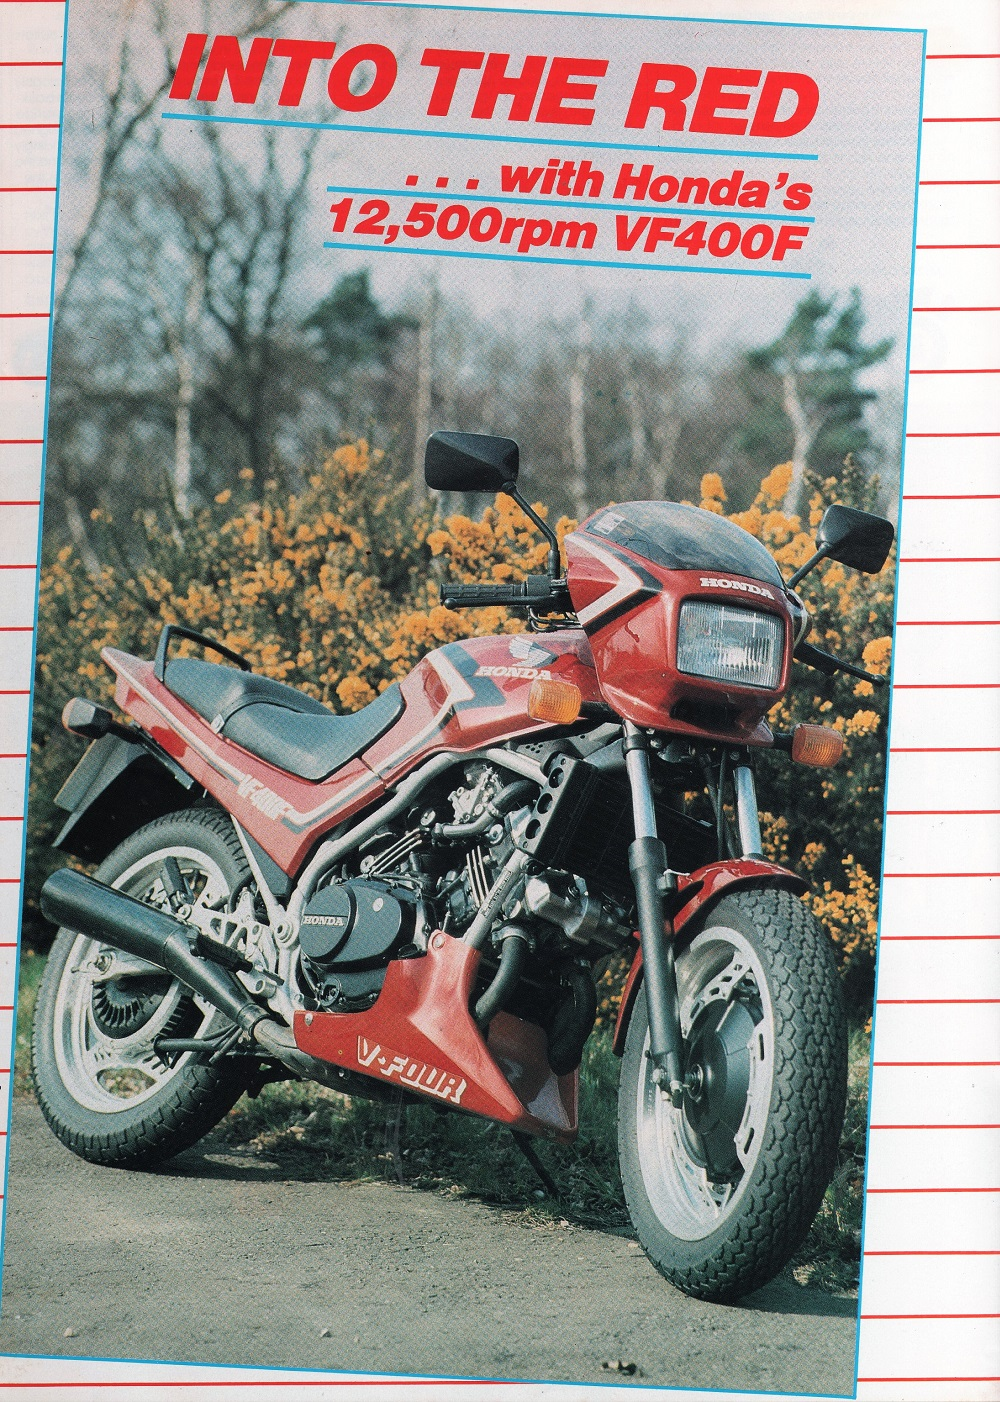 1983 Honda VF400F road test.2.jpg